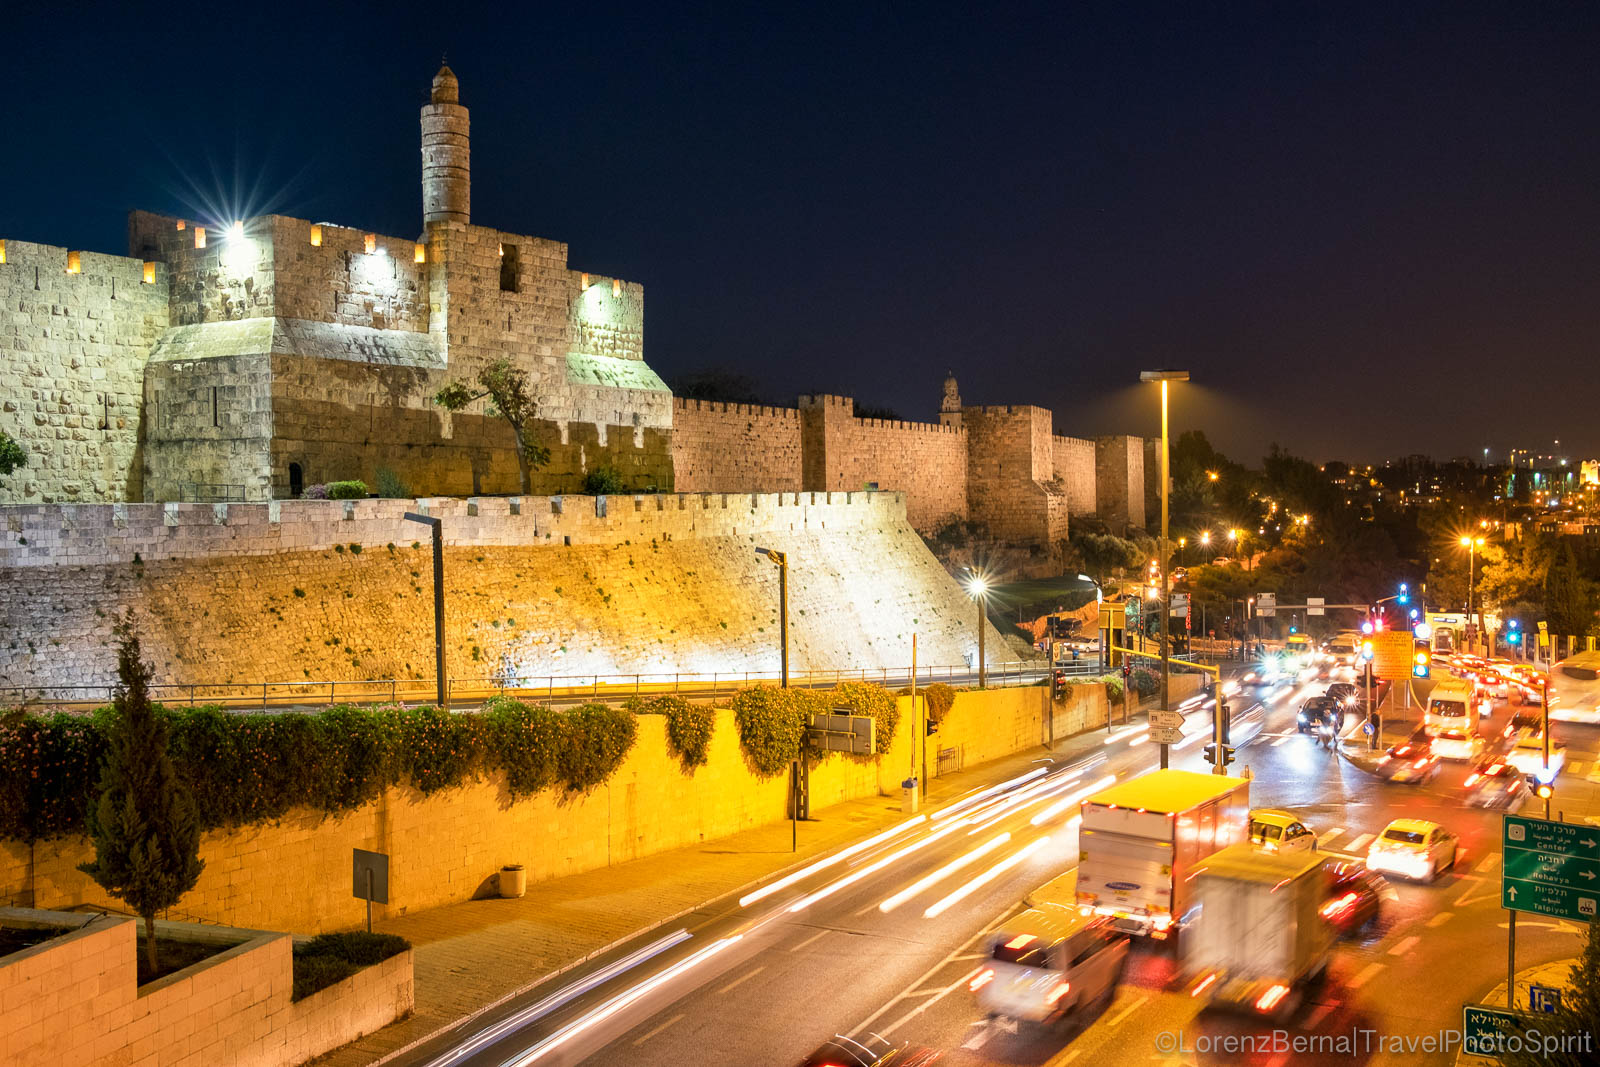 Jaffa Gate by night, Jerusalem, Israel.